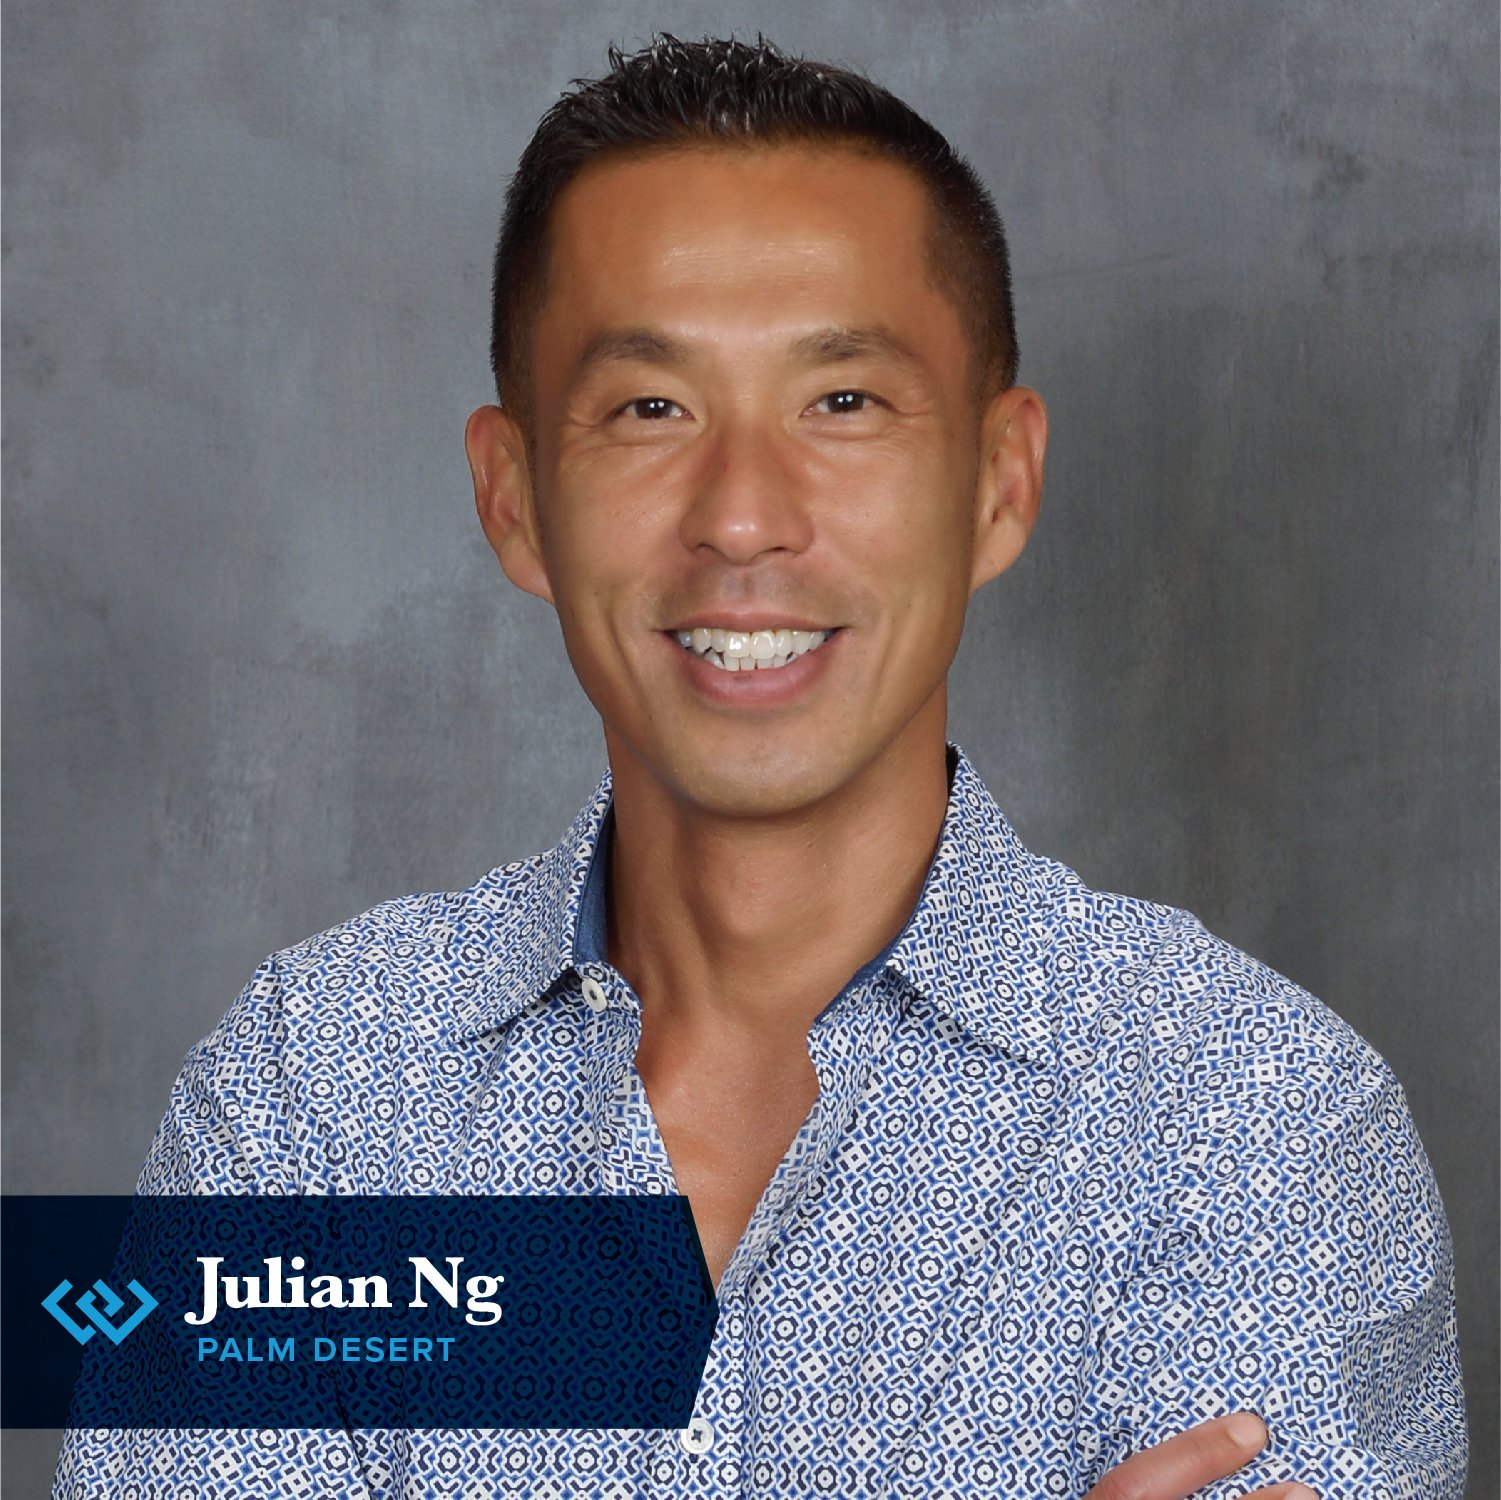 Julian Ng, man smiling